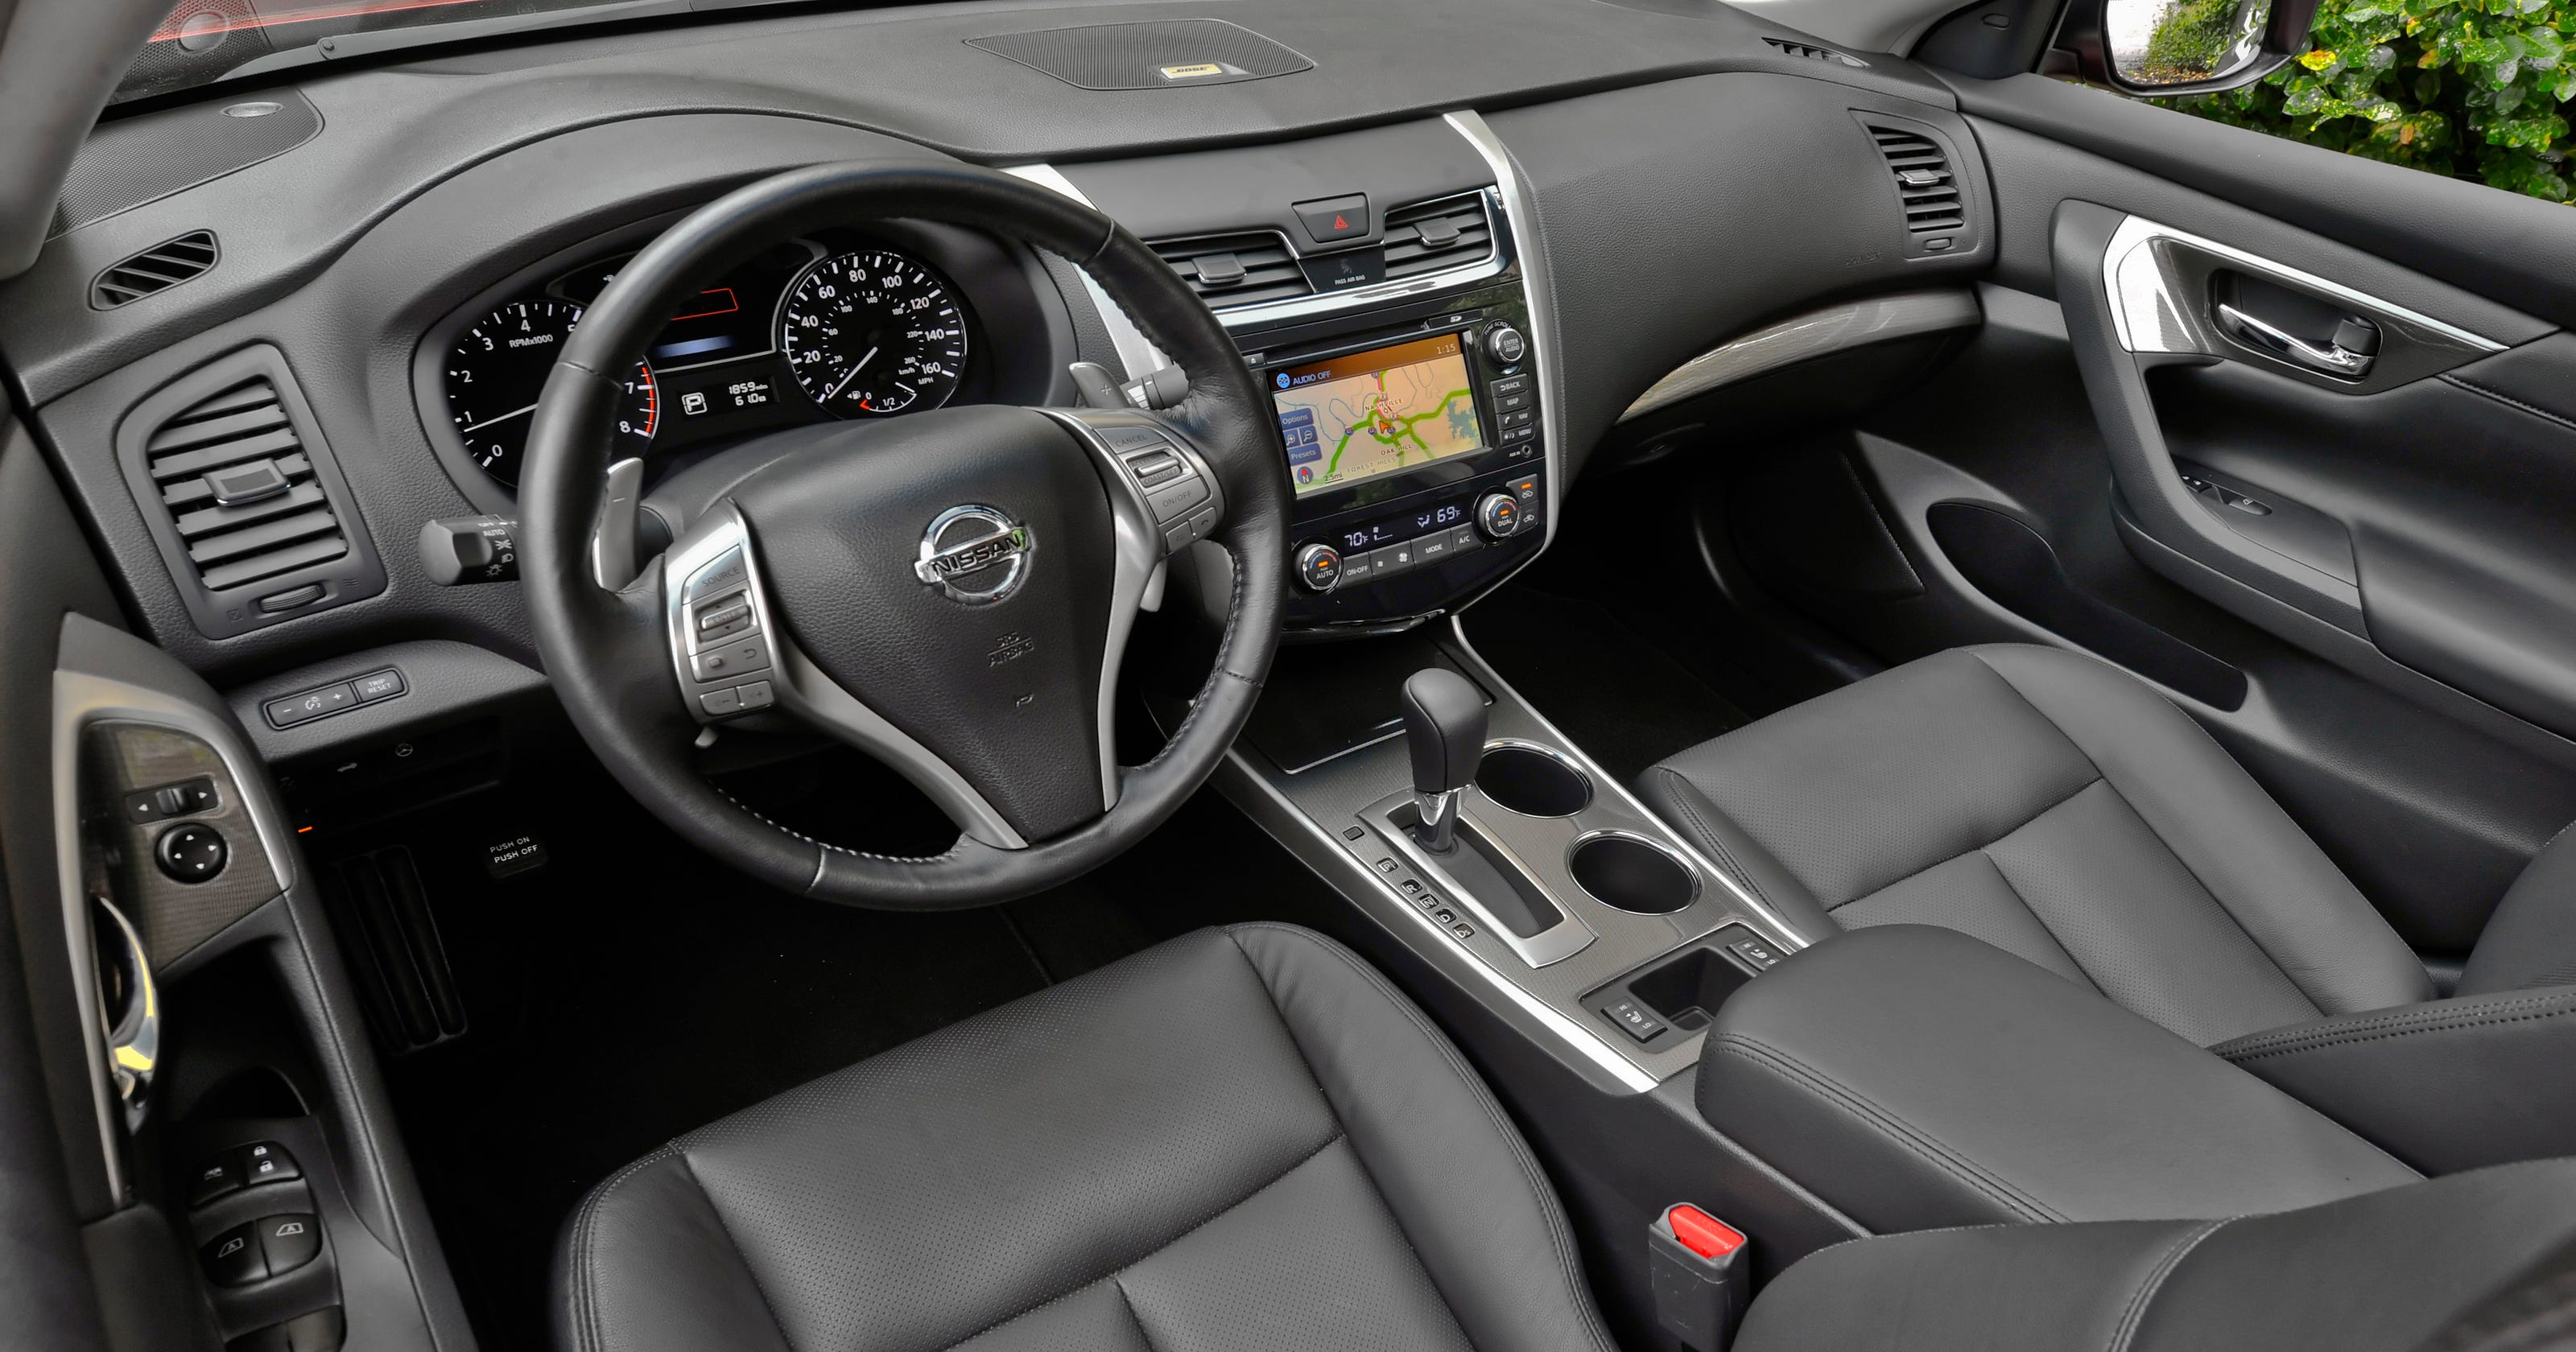 auto review: 2014 nissan altima keeps the faith